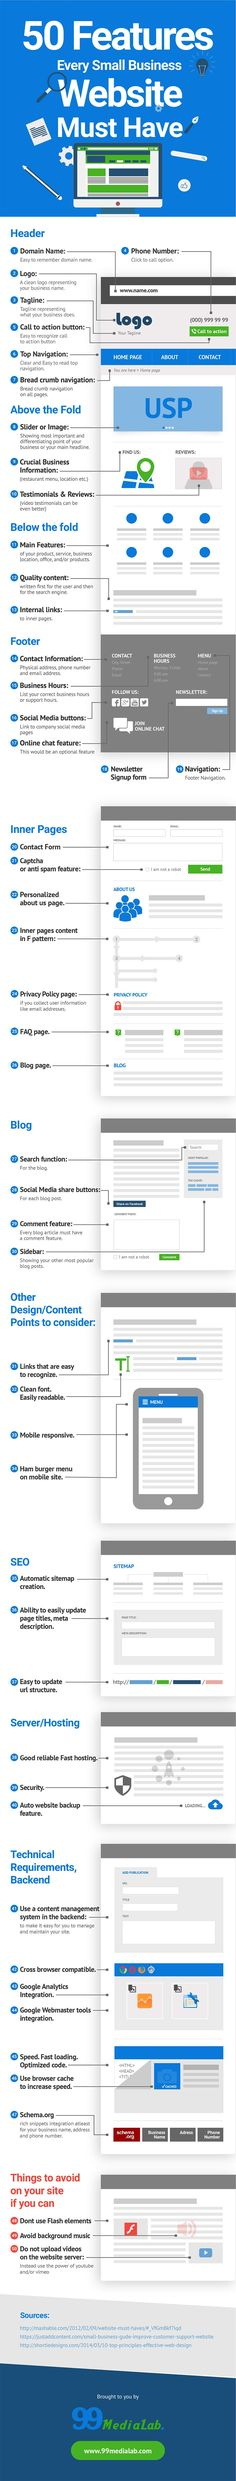 50-Features-Every-Small-Business-Website-Should-Have.jpg (900×9463)